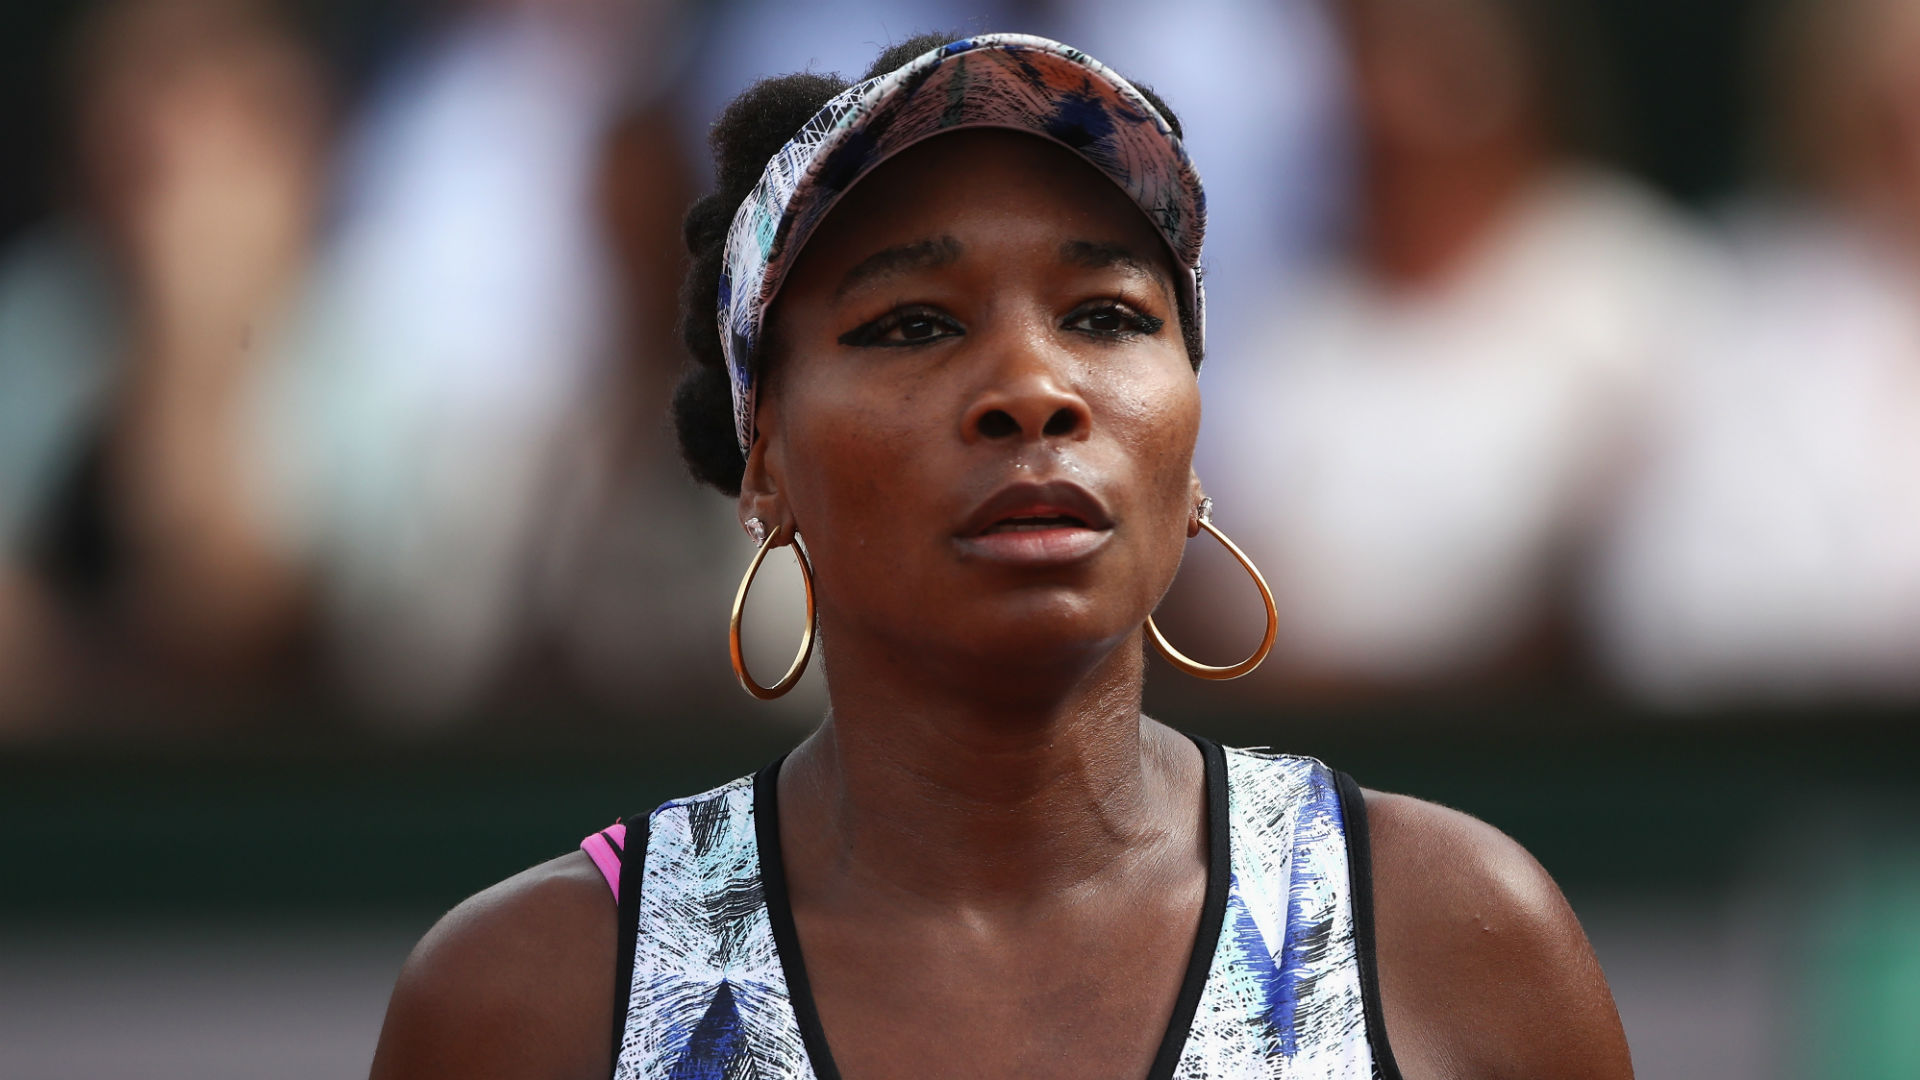 Florida police say Venus Williams was driving 'lawfully' before fatal crash